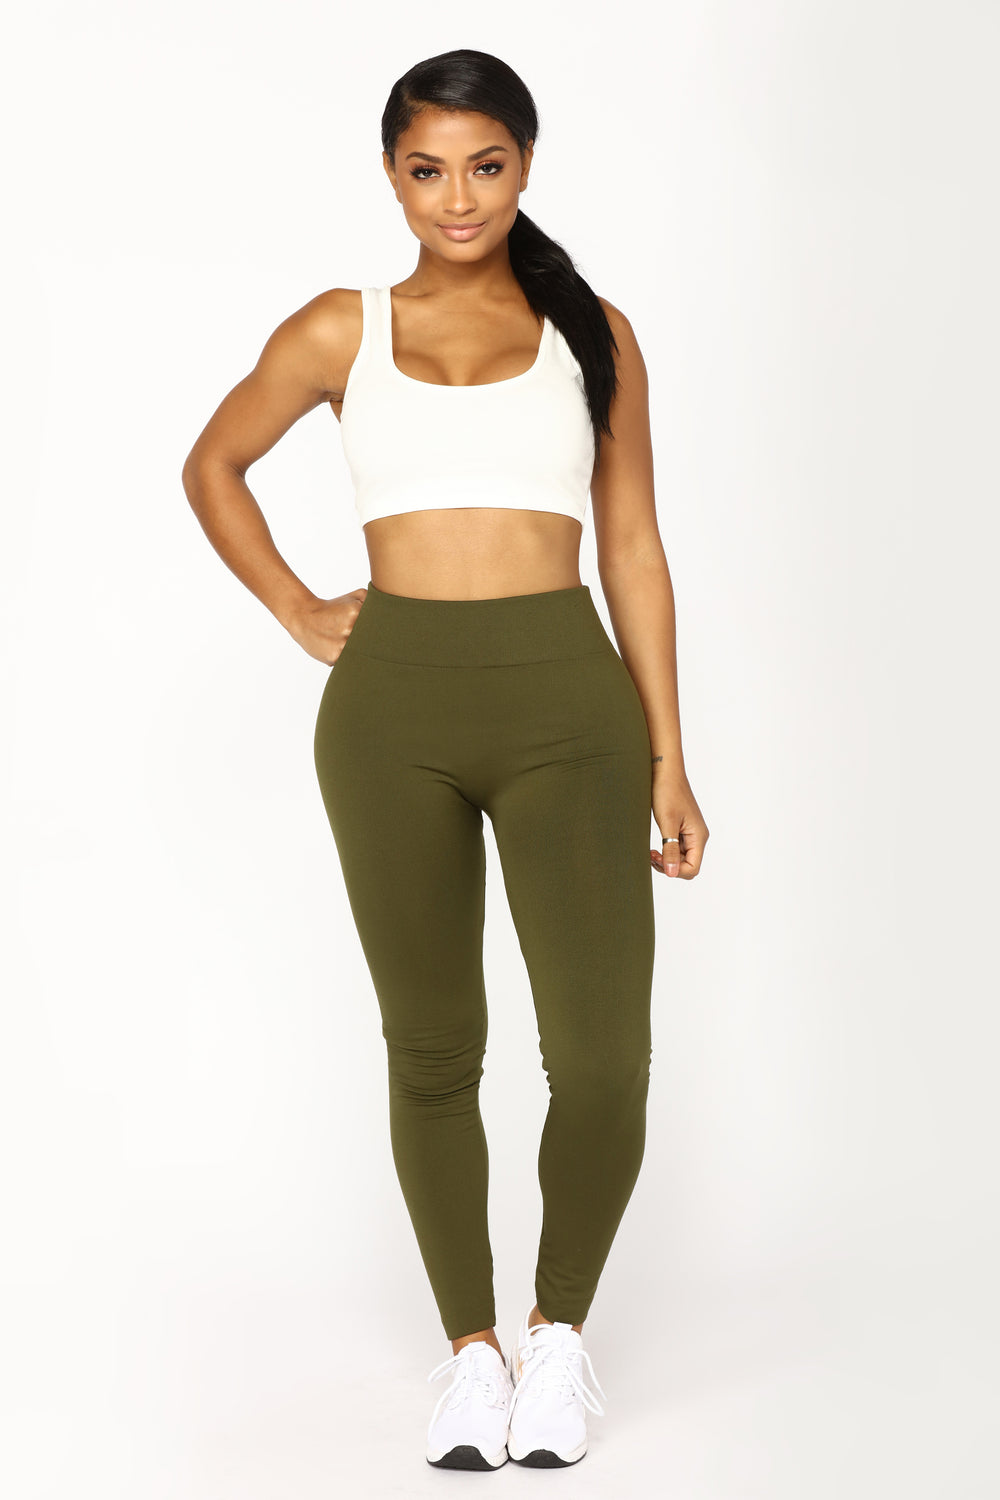 Yes Fleece III Leggings - Olive